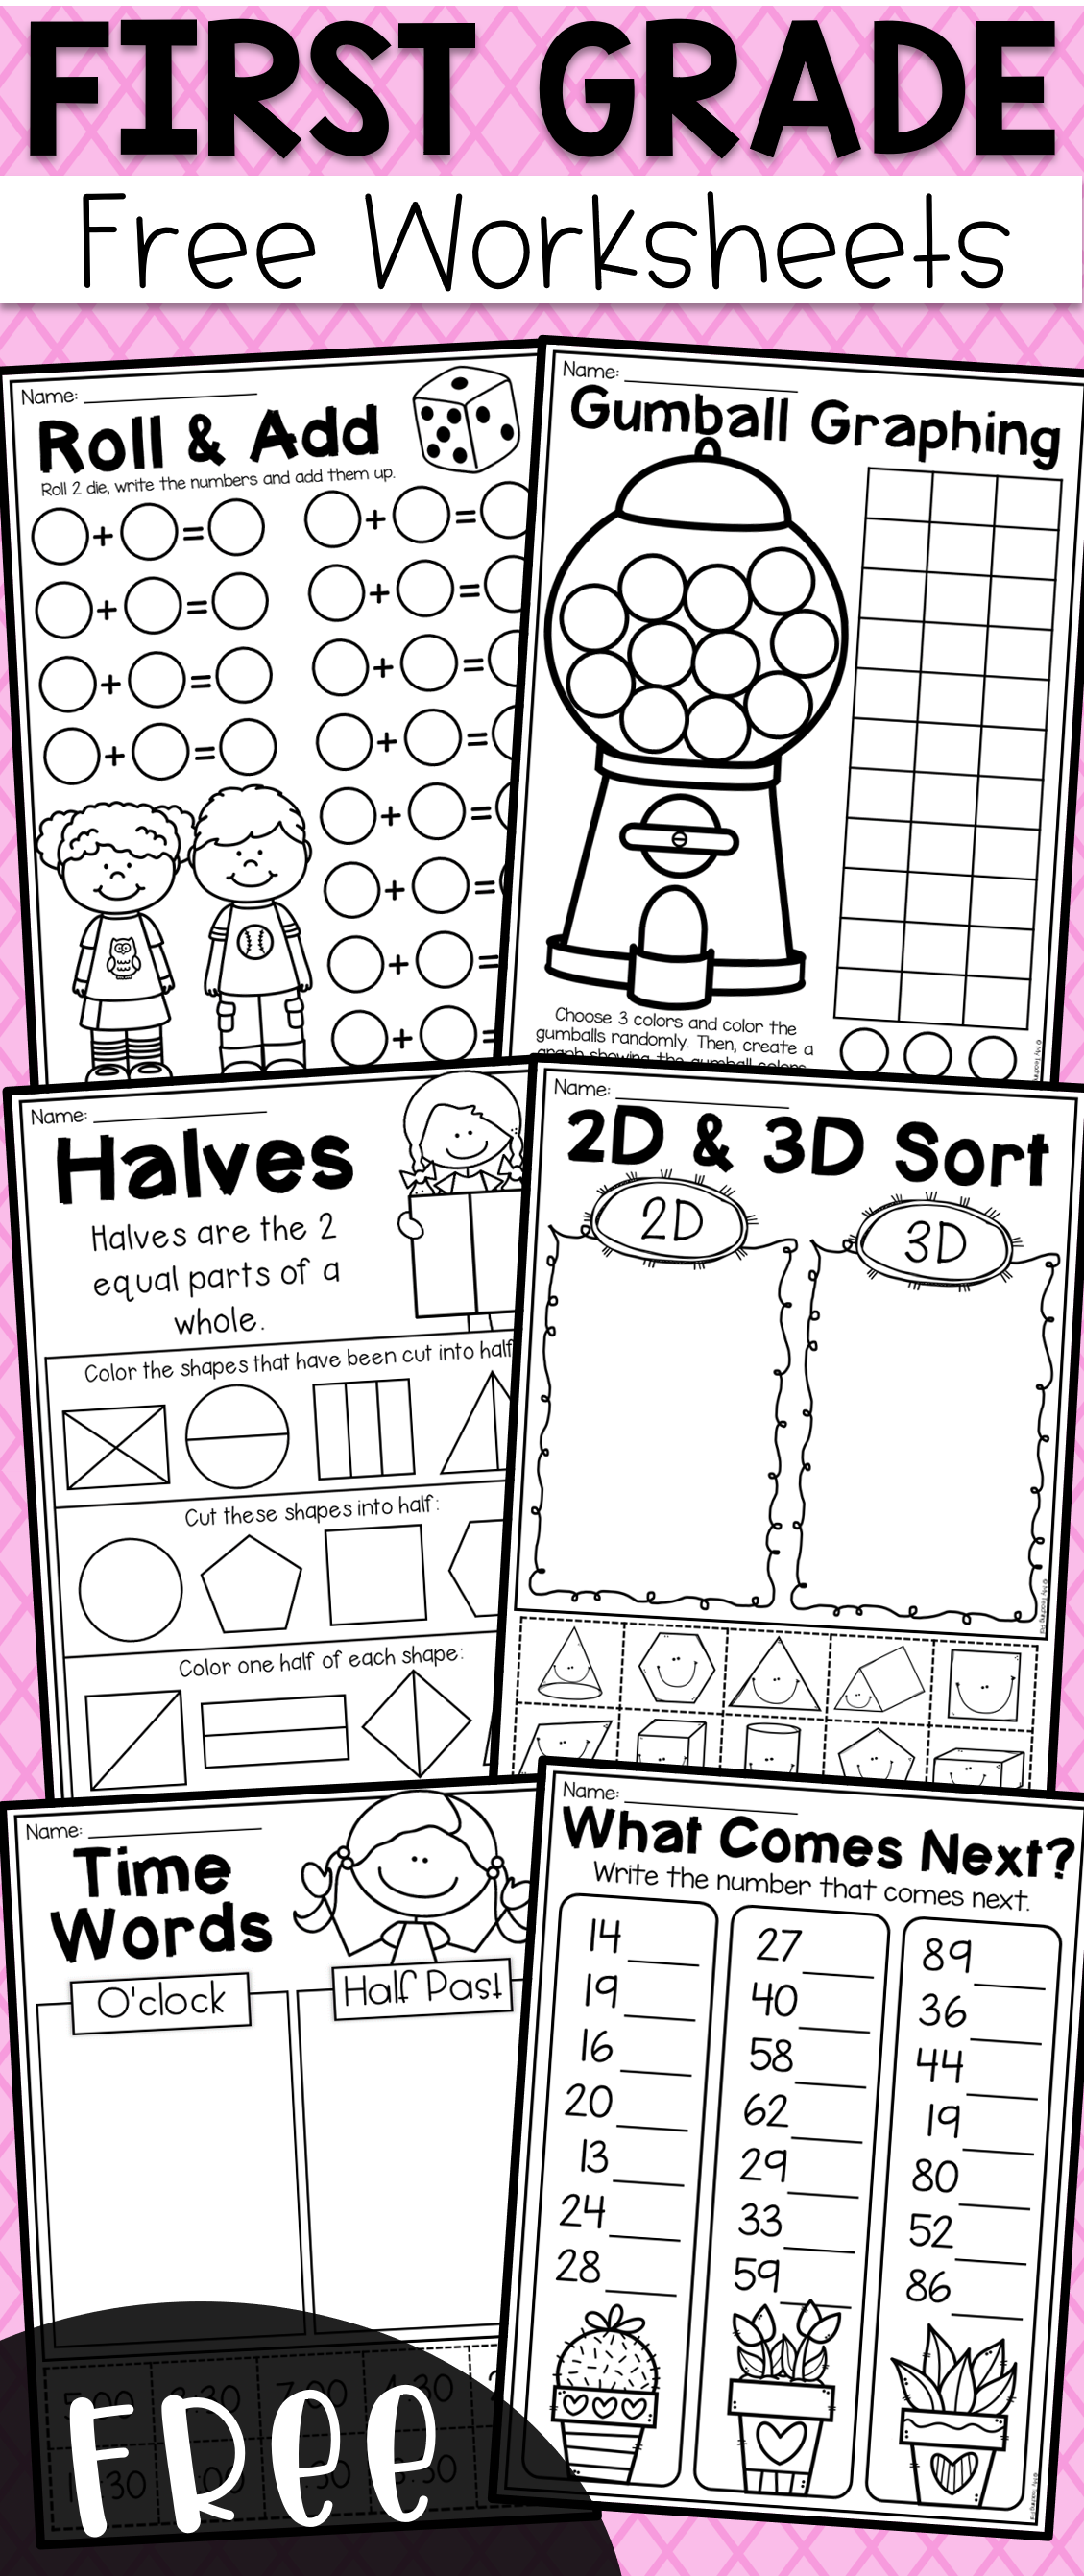 Free First Grade Math Worksheets It Provides Students With Practice In Addition Place Val First Grade Math Worksheets First Grade Worksheets First Grade Math